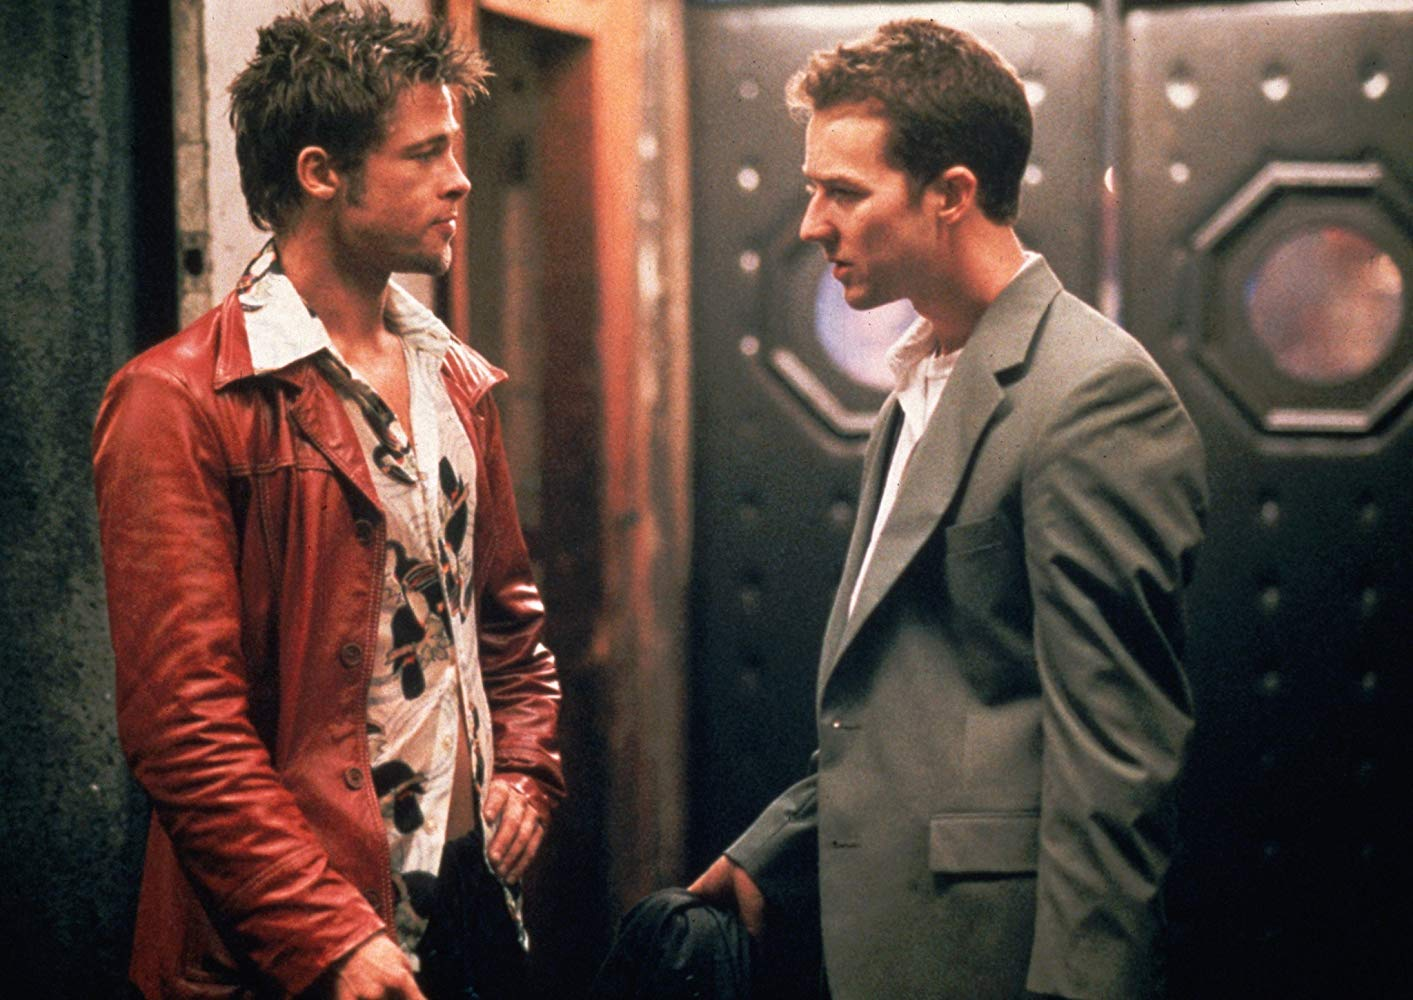 Tyler Durden (Brad Pitt) and Jack (Edward Norton) in Fight Club (1999)